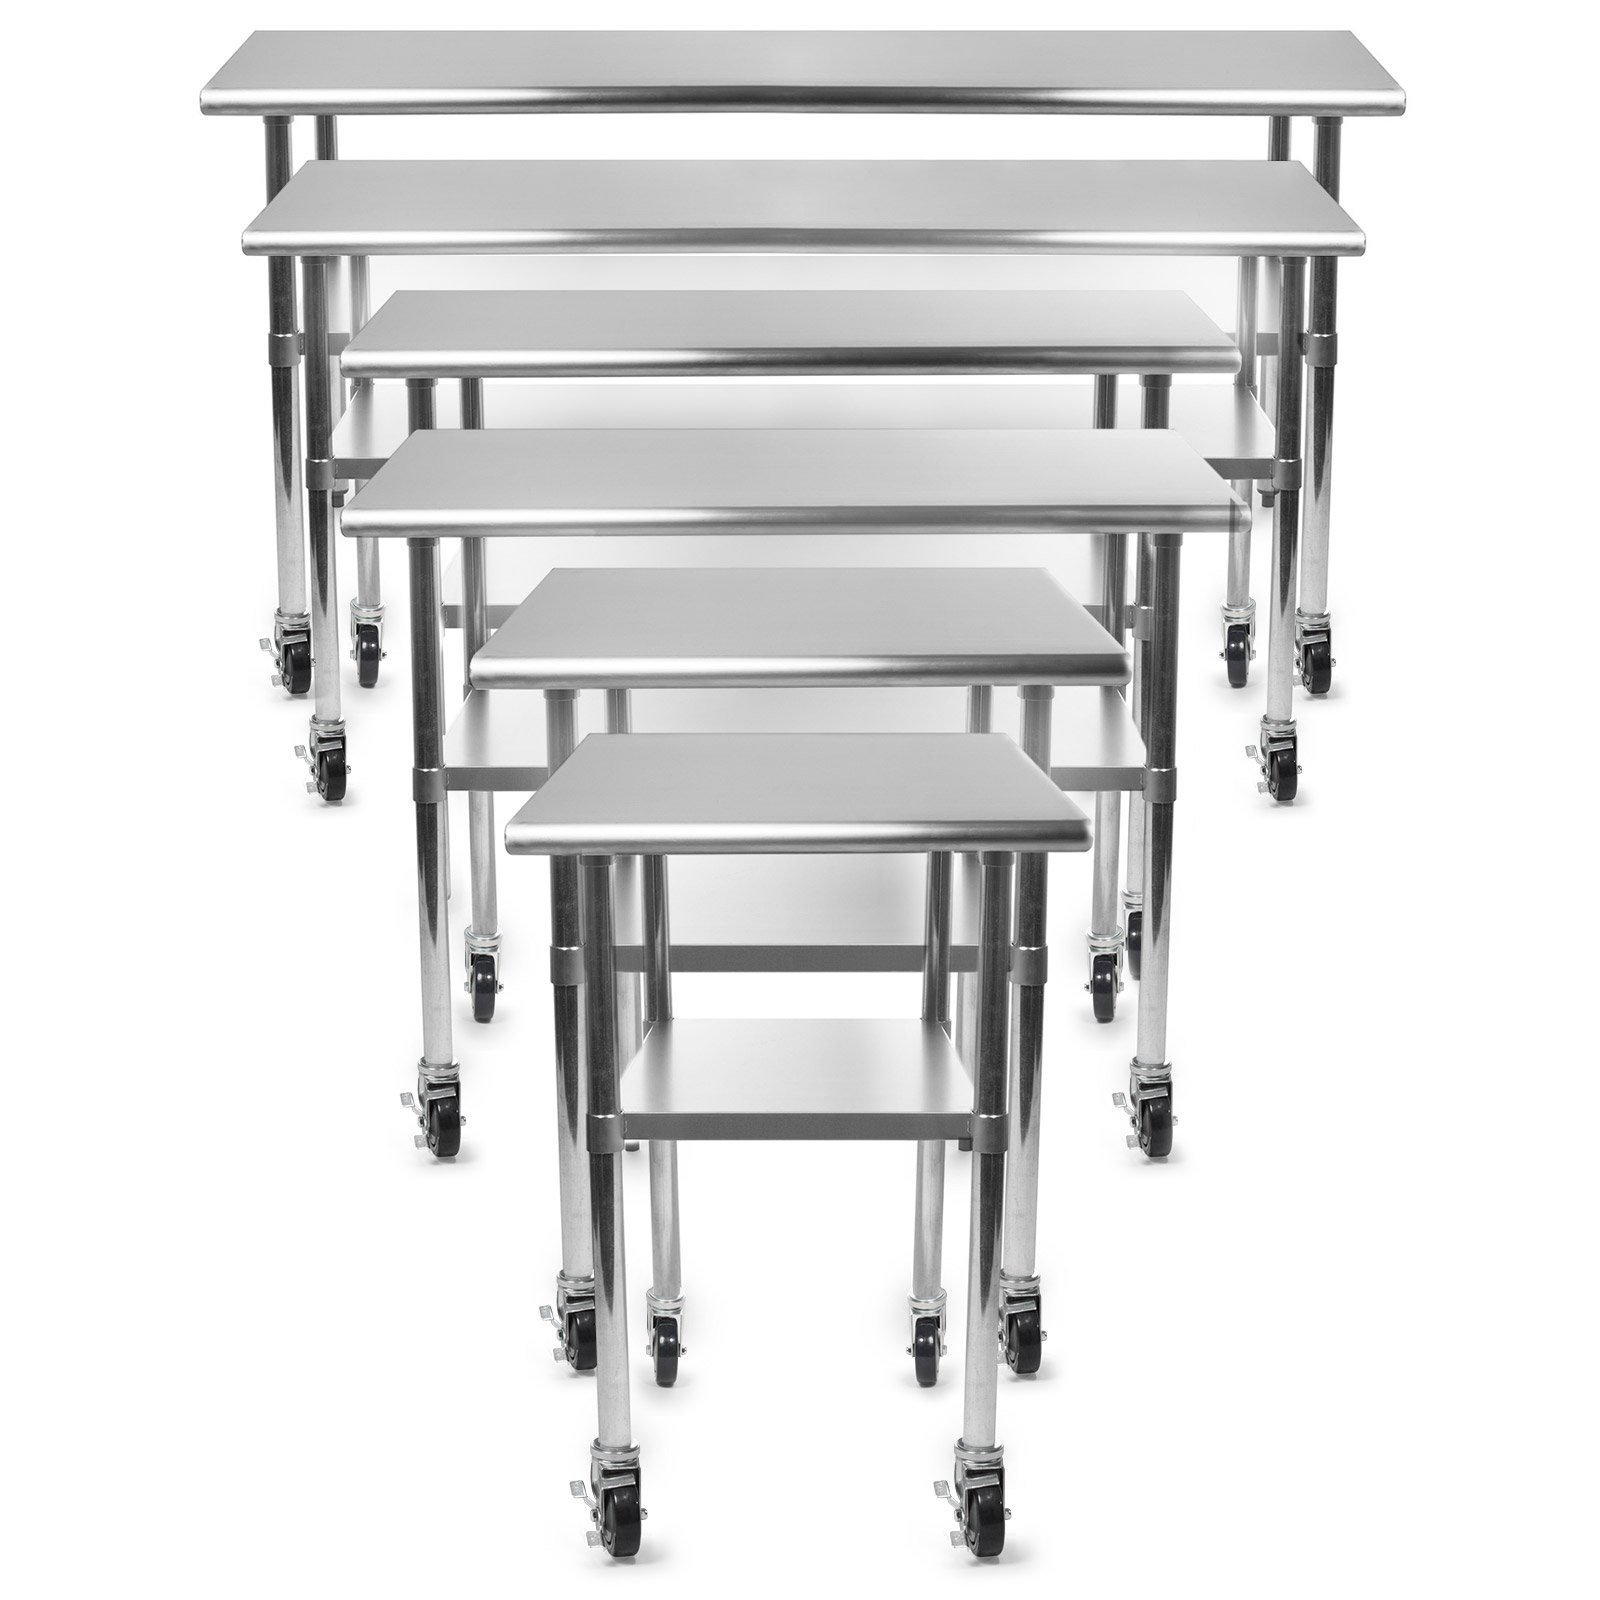 Gridmann NSF Stainless Steel Commercial Kitchen Prep & Work Table w/ 4 Casters (Wheels) - 48 in. x 24 in.